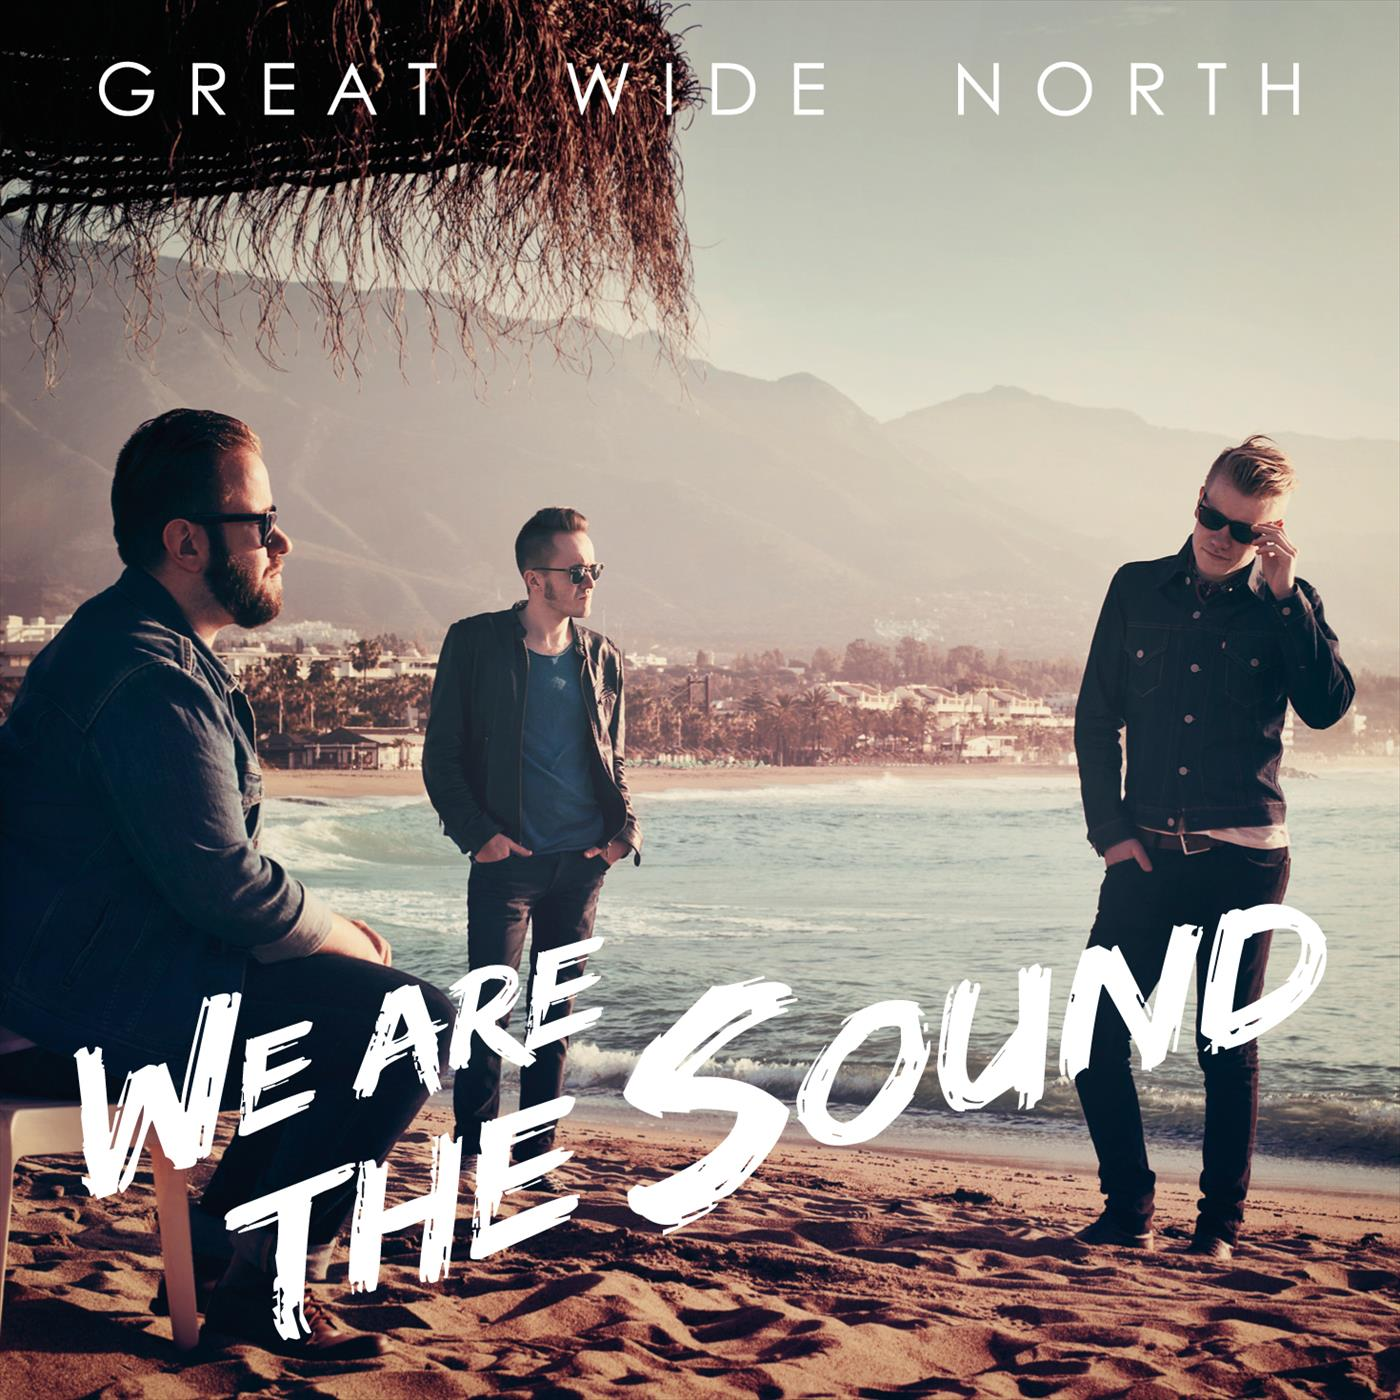 We are the Sound